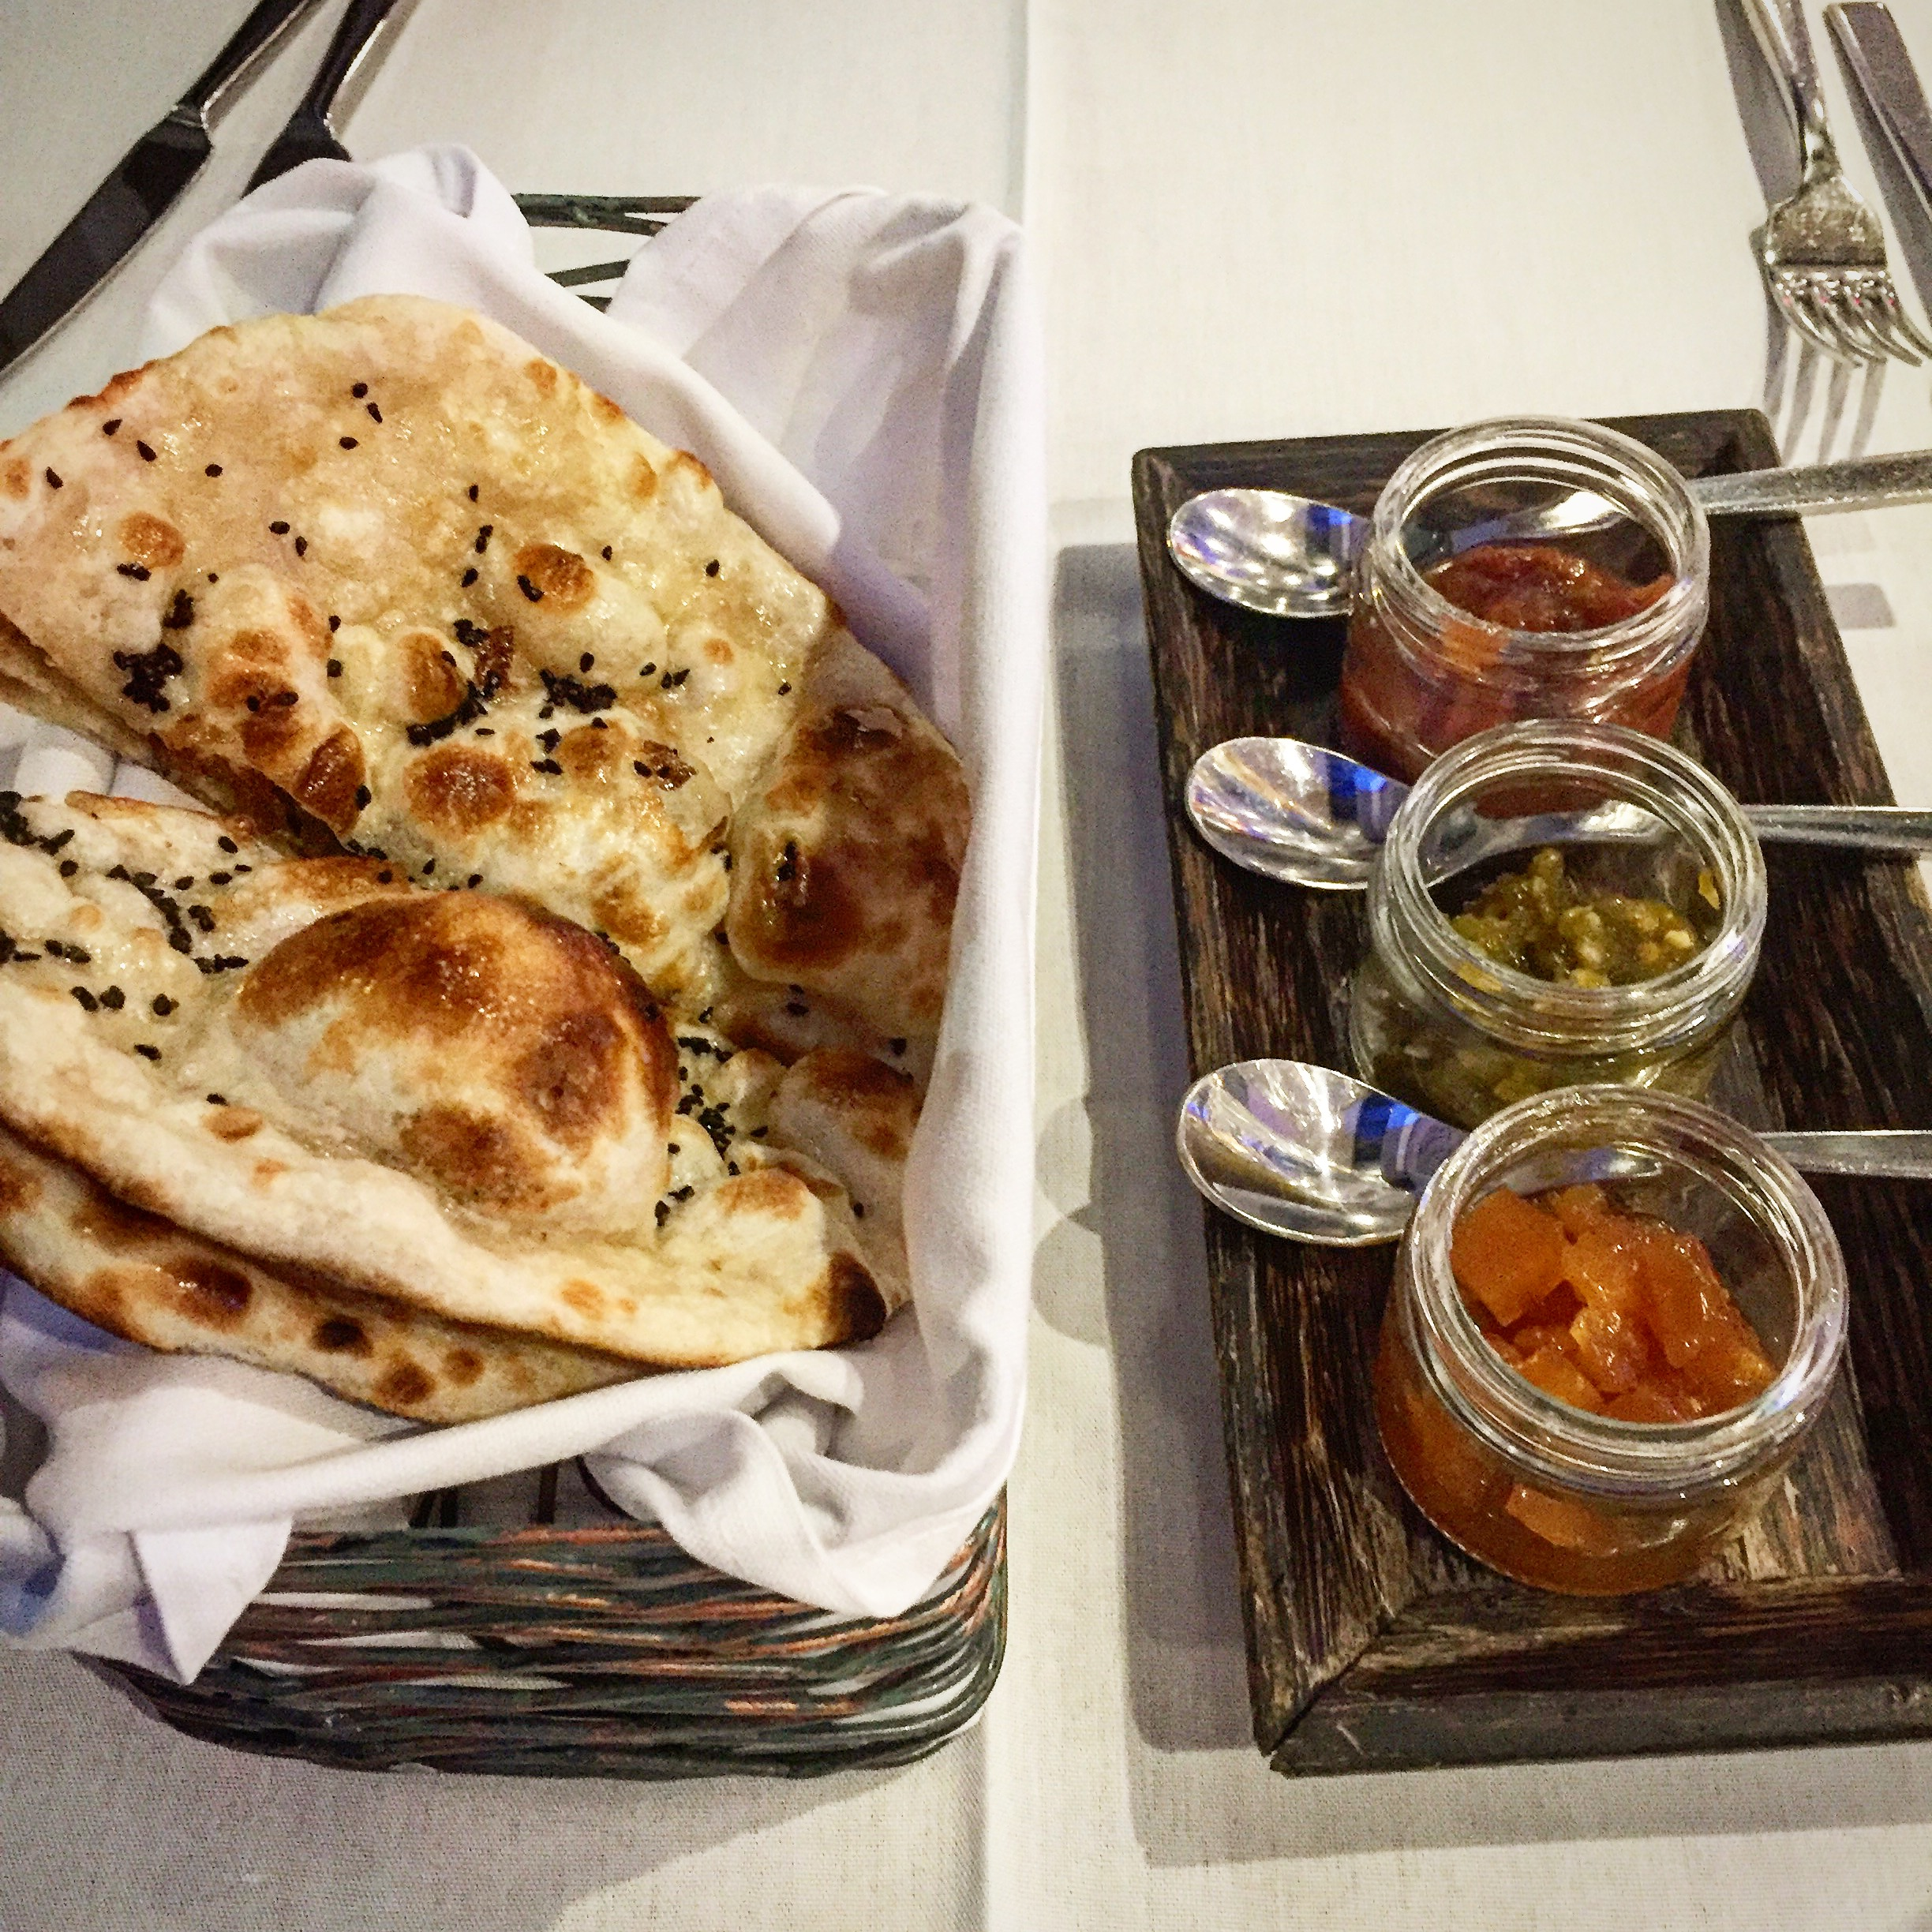 This has to be the best clay oven flat bread on island!  Definitely give each of the chutneys a try to find your favourite, from sweet plum to spicy jalapeno.